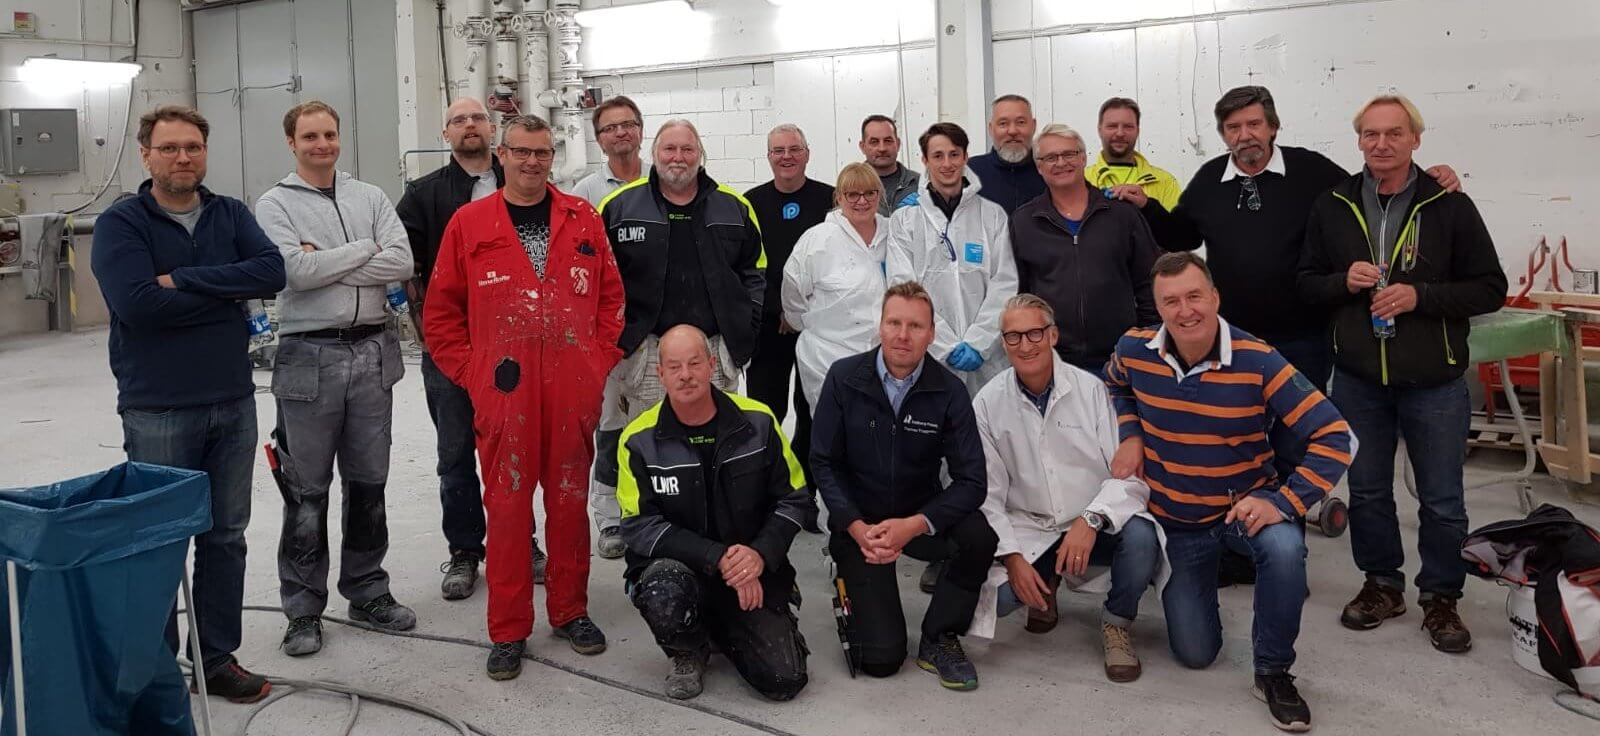 Scott Bader Scandinavia showcases our Crestamould high performance tooling system